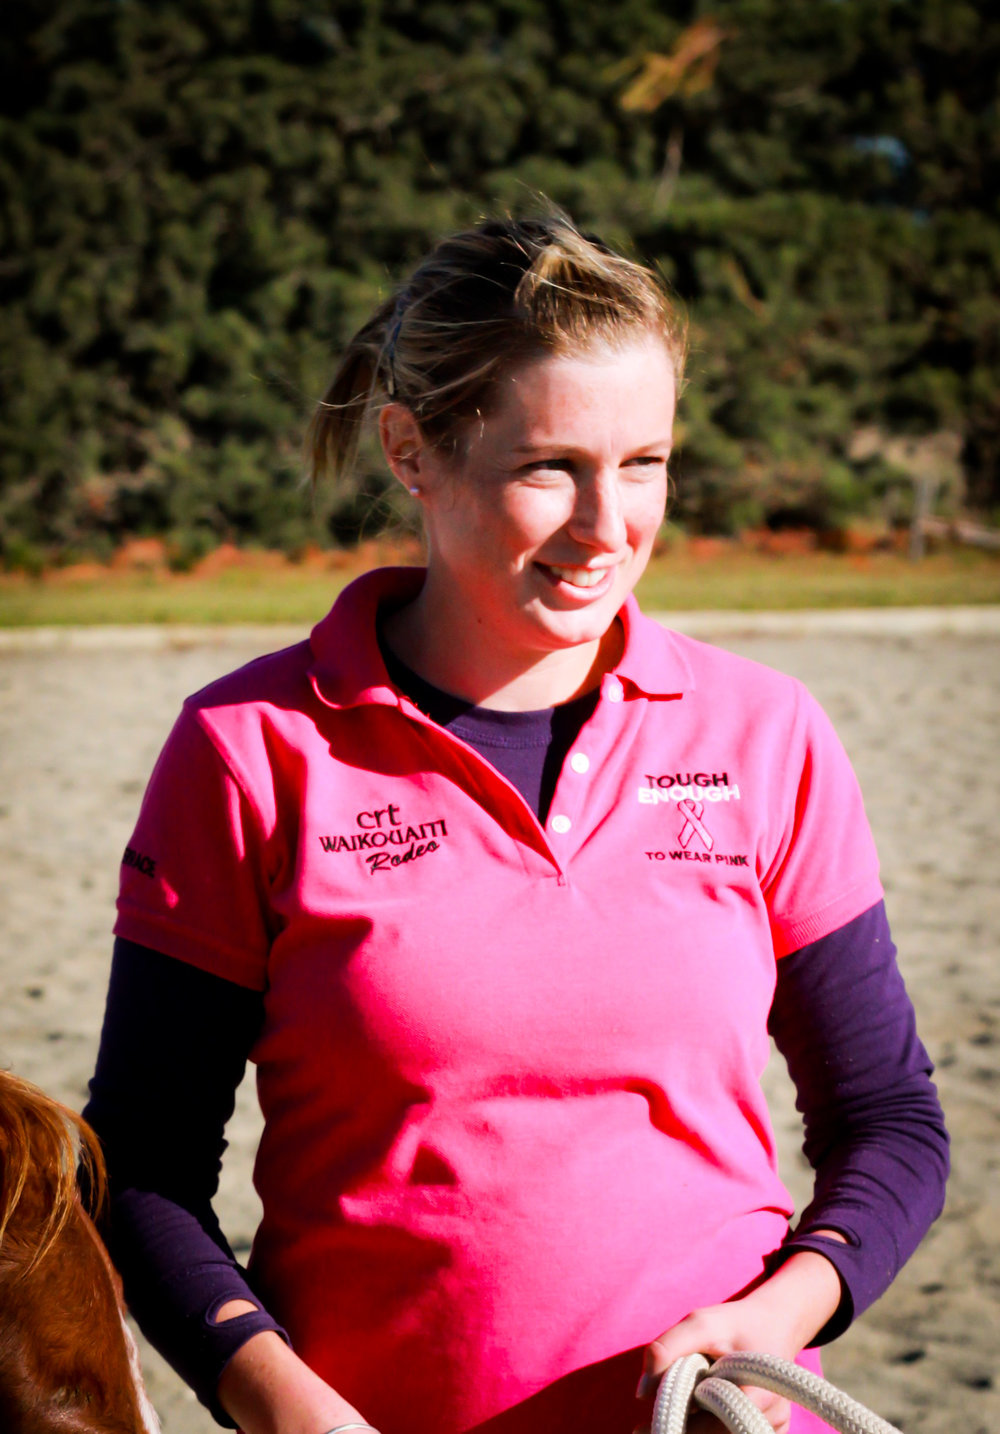 """I pride myself in knowing I am helping students learn how to confidently care for animals, where their food comes from and what is involved in the process."